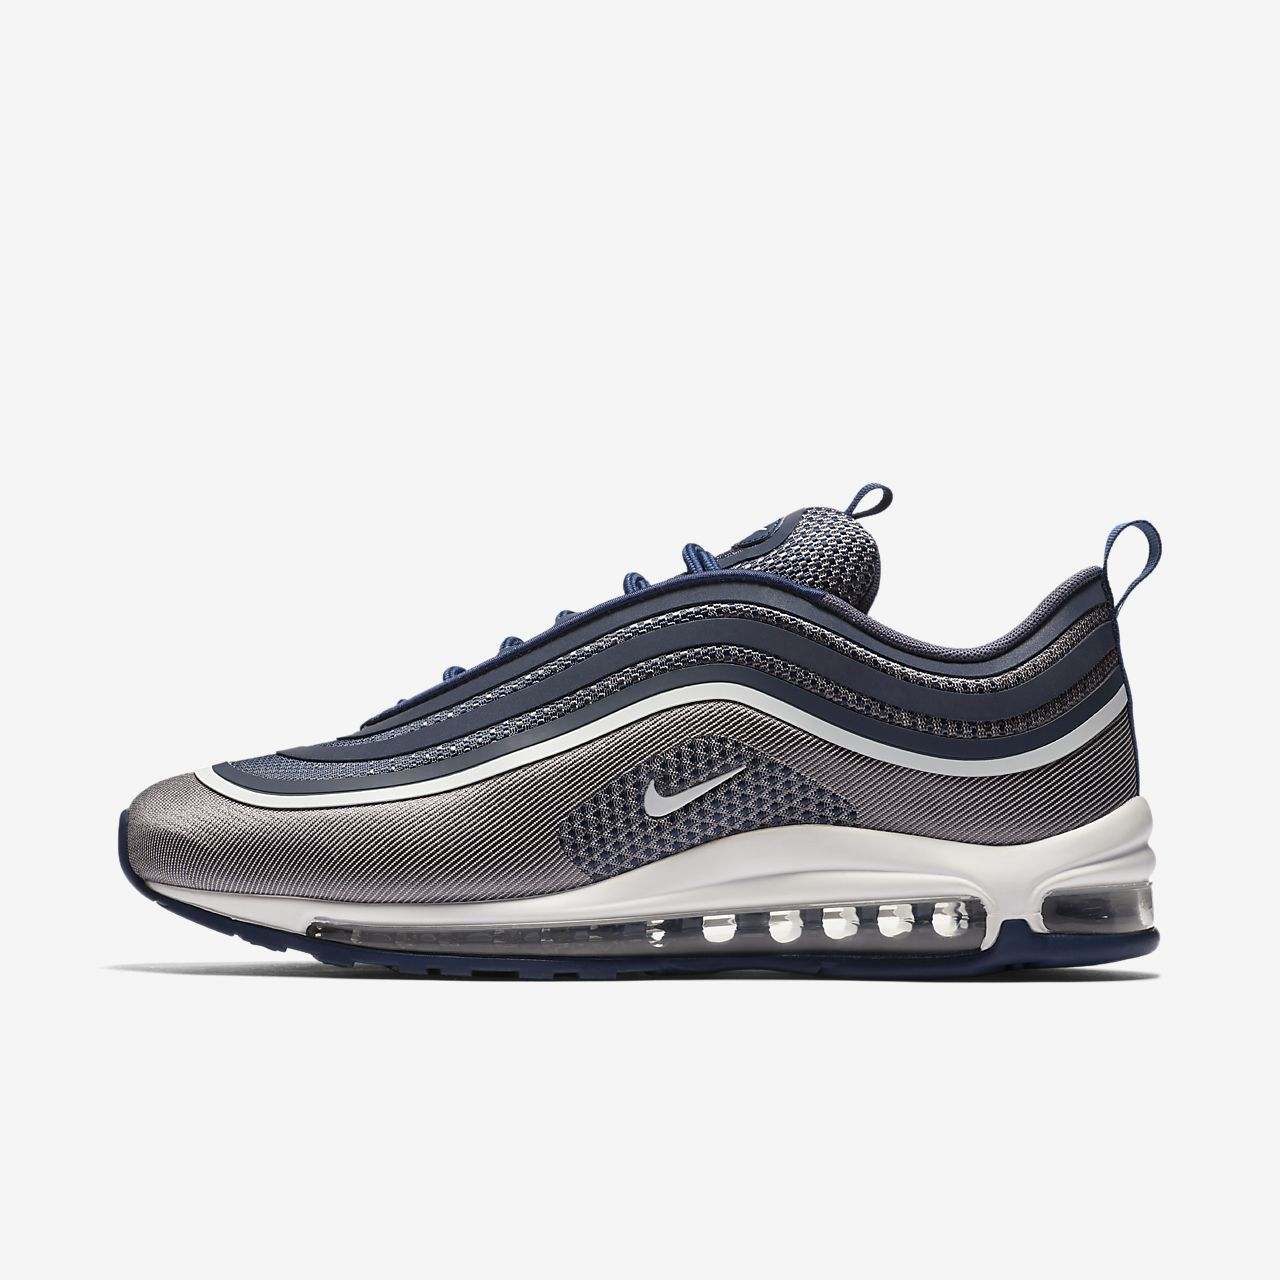 Nike Air Max 97 Premium Black Gold Mercari: BUY & SELL THINGS